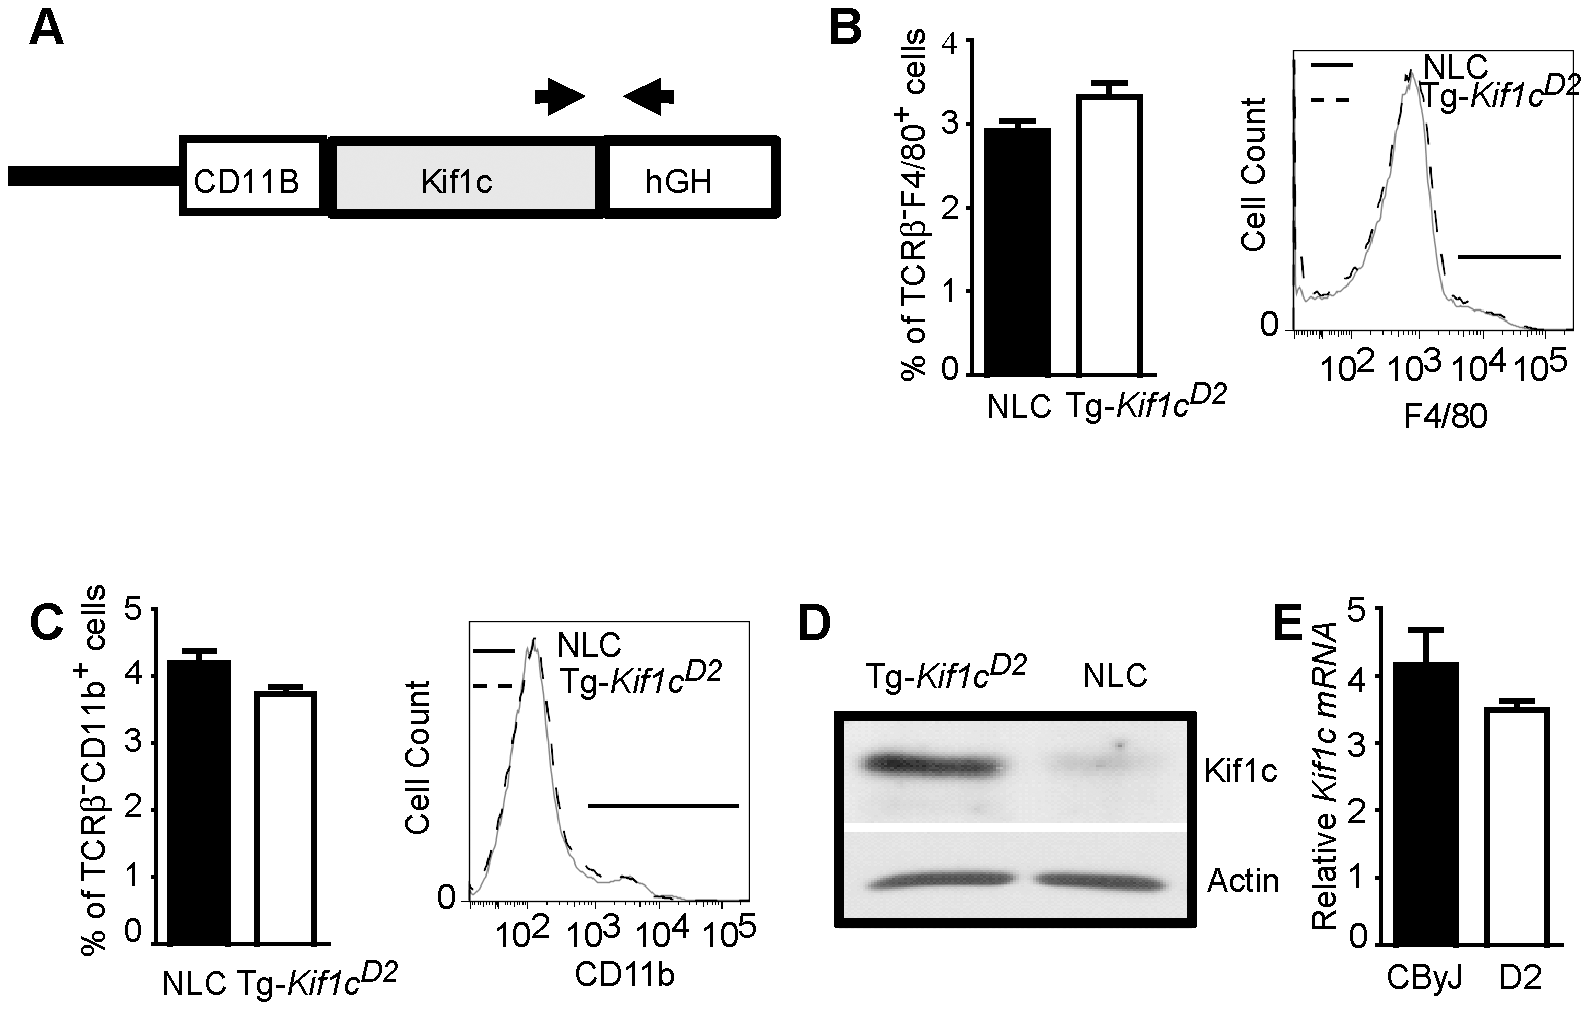 Generation of BALB/cByJ-<i>CD11B</i>-<i>Kif1c<sup>D2</sup></i> transgenic (Tg-<i>Kif1c<sup>D2</sup></i>) mice.